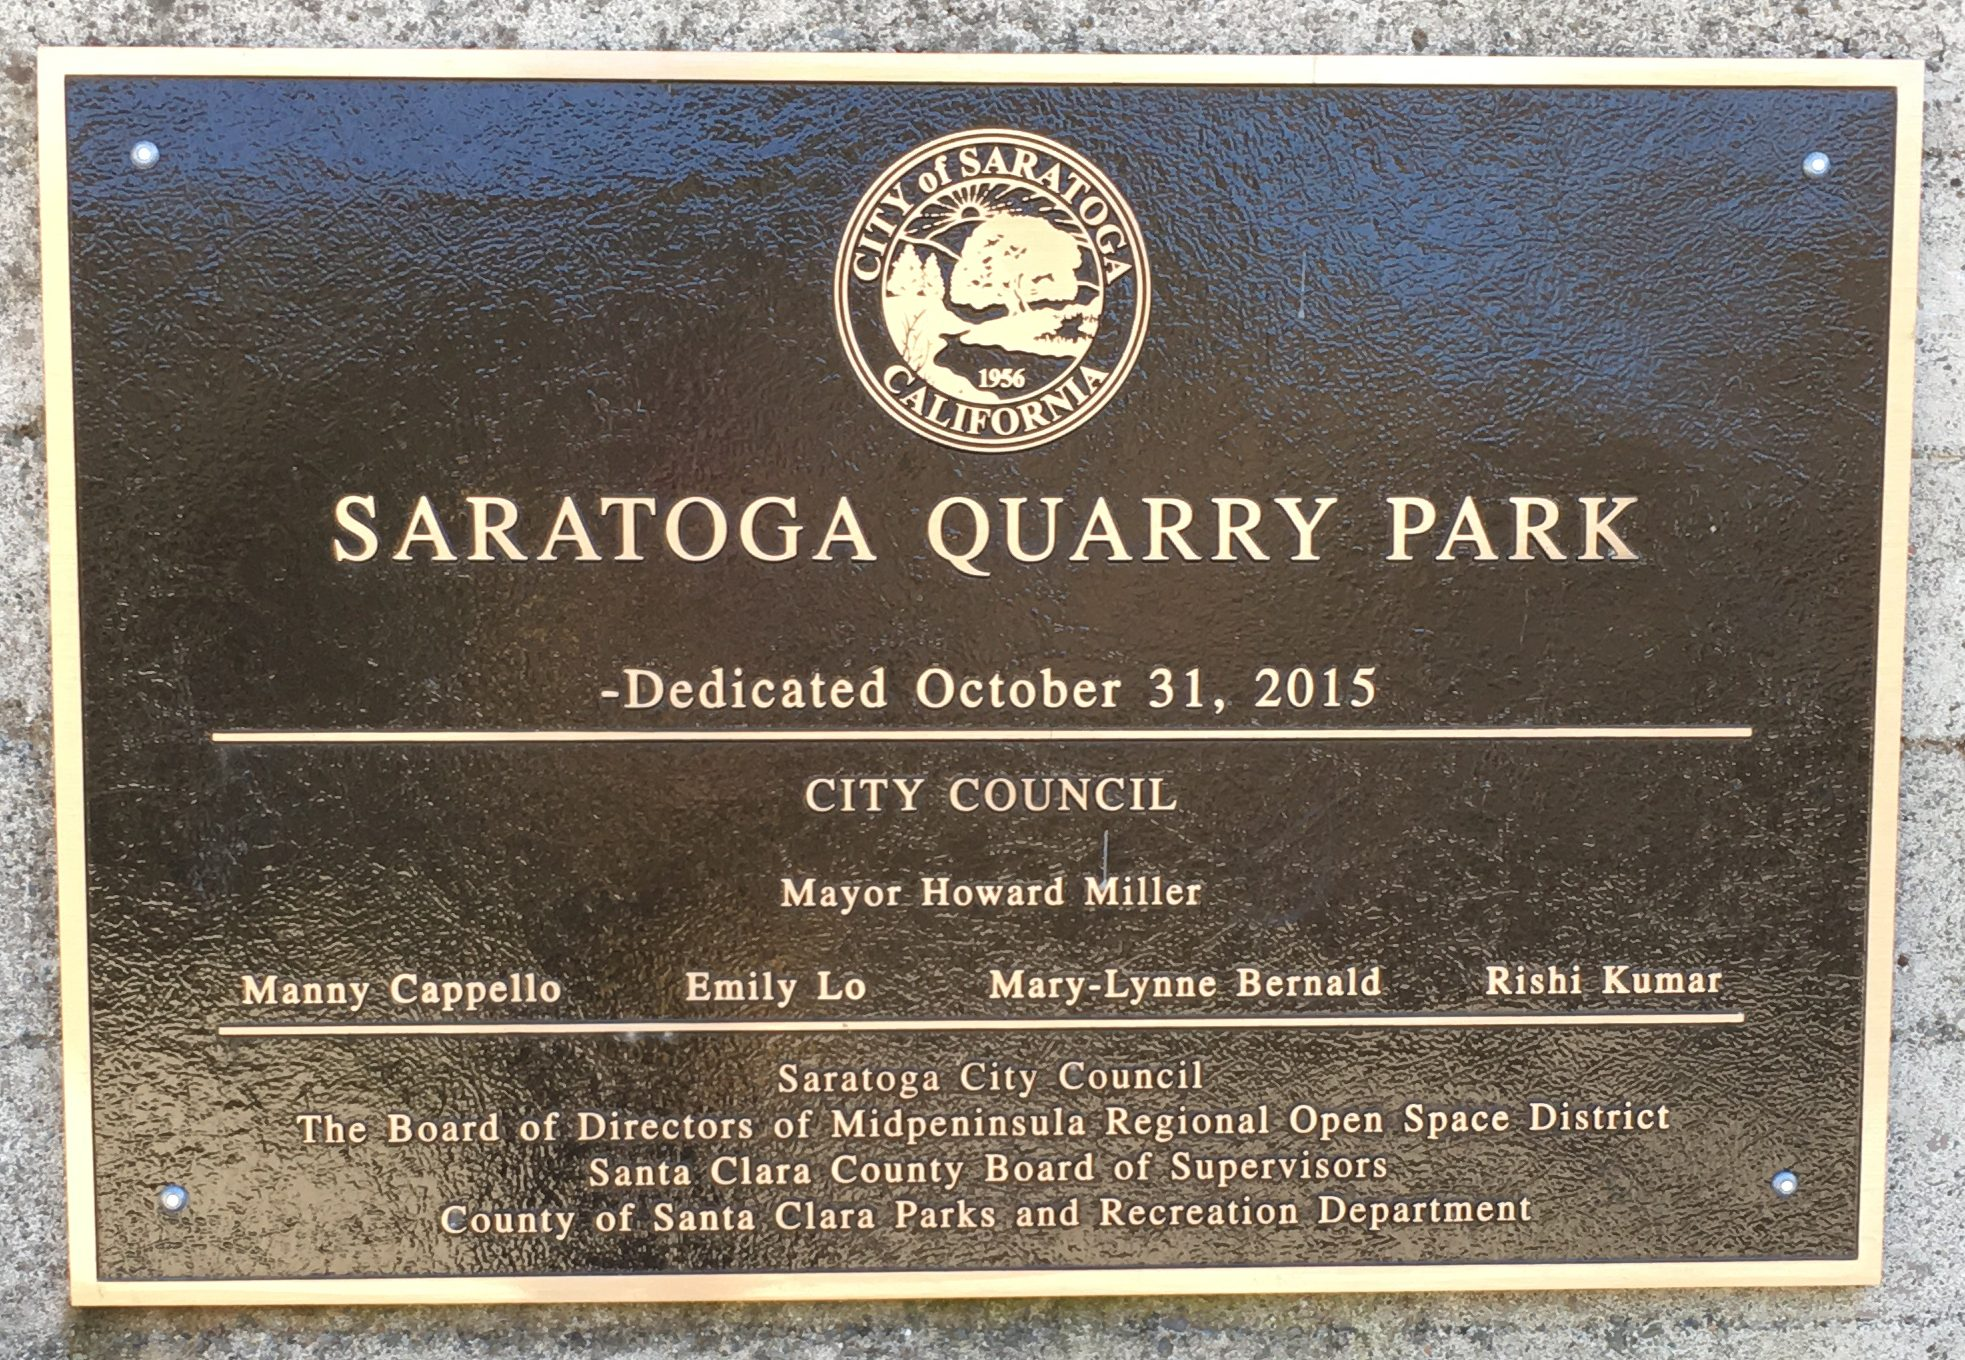 Saratoga Quarry Park plaque